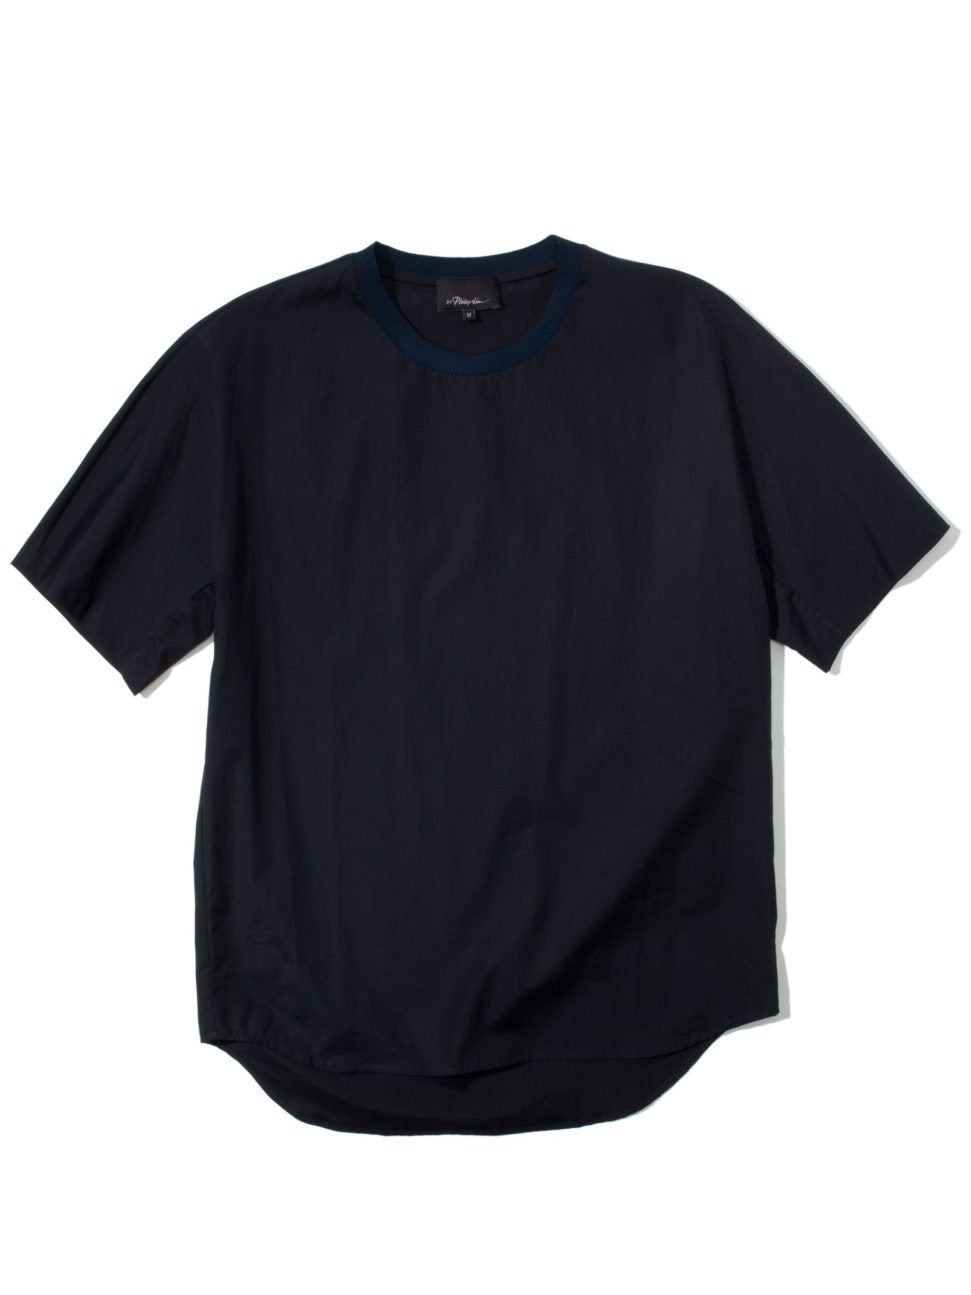 3.1 Phillip Lim Dolman Sleeve T-Shirt-4